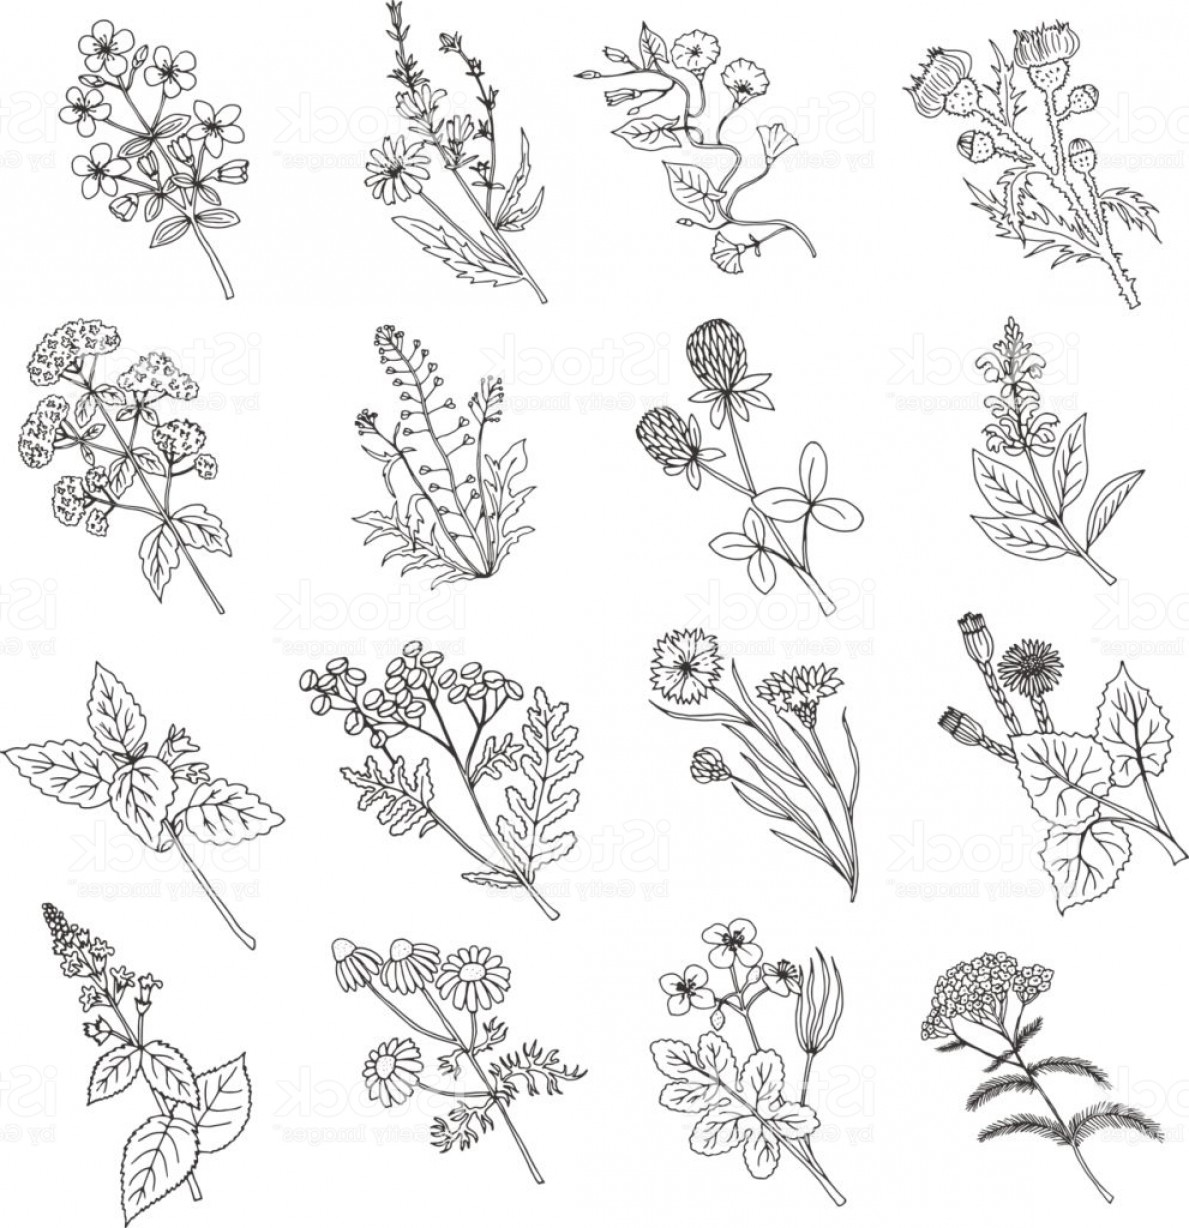 Botanical Flower Vectors: Botanical Sketch Drawings Vector Illustration Of Flowers And Botanic Herbs Gm